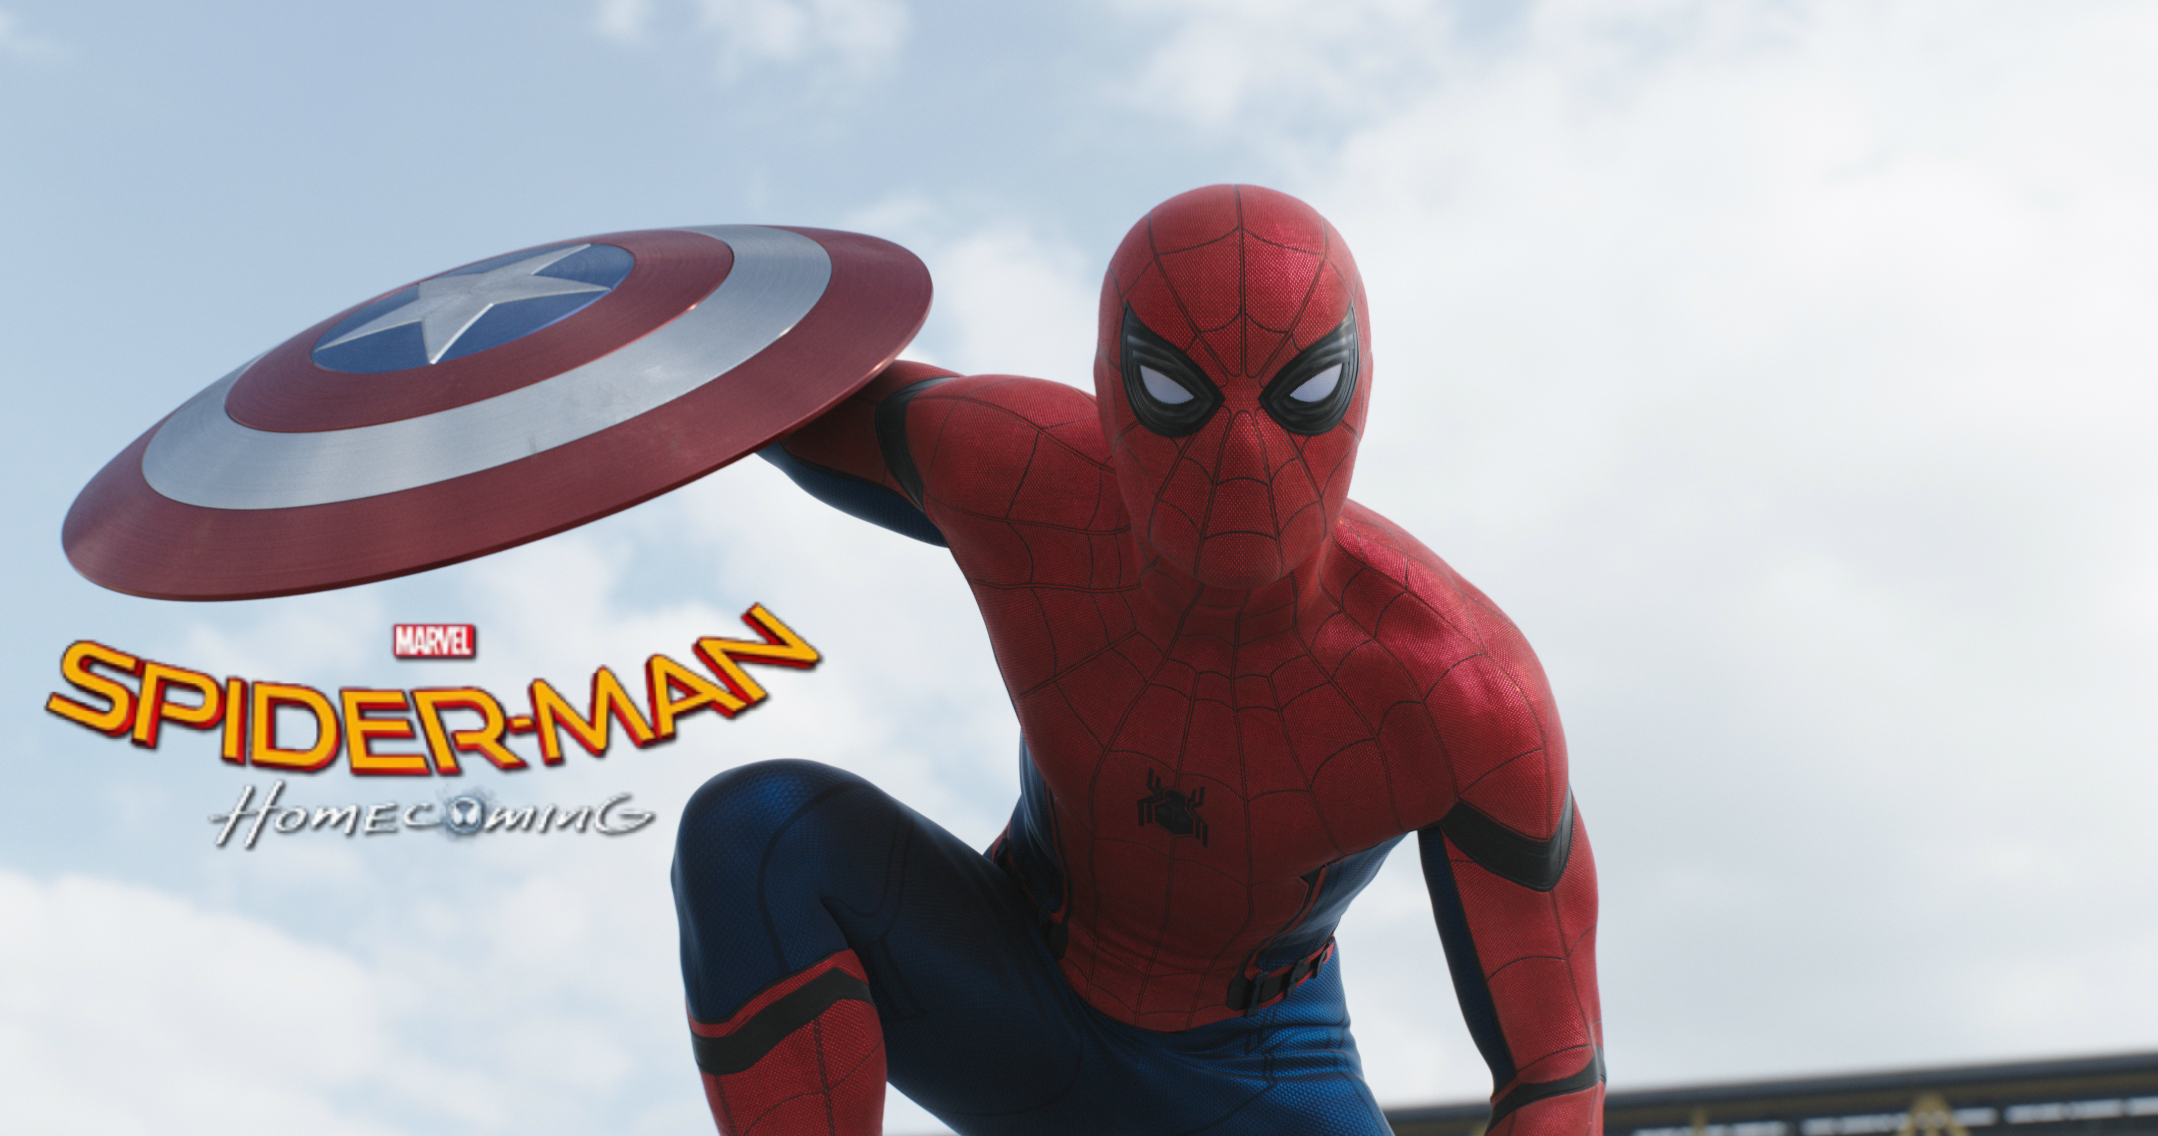 spider-man-homecoming-4k-wallpaper-7